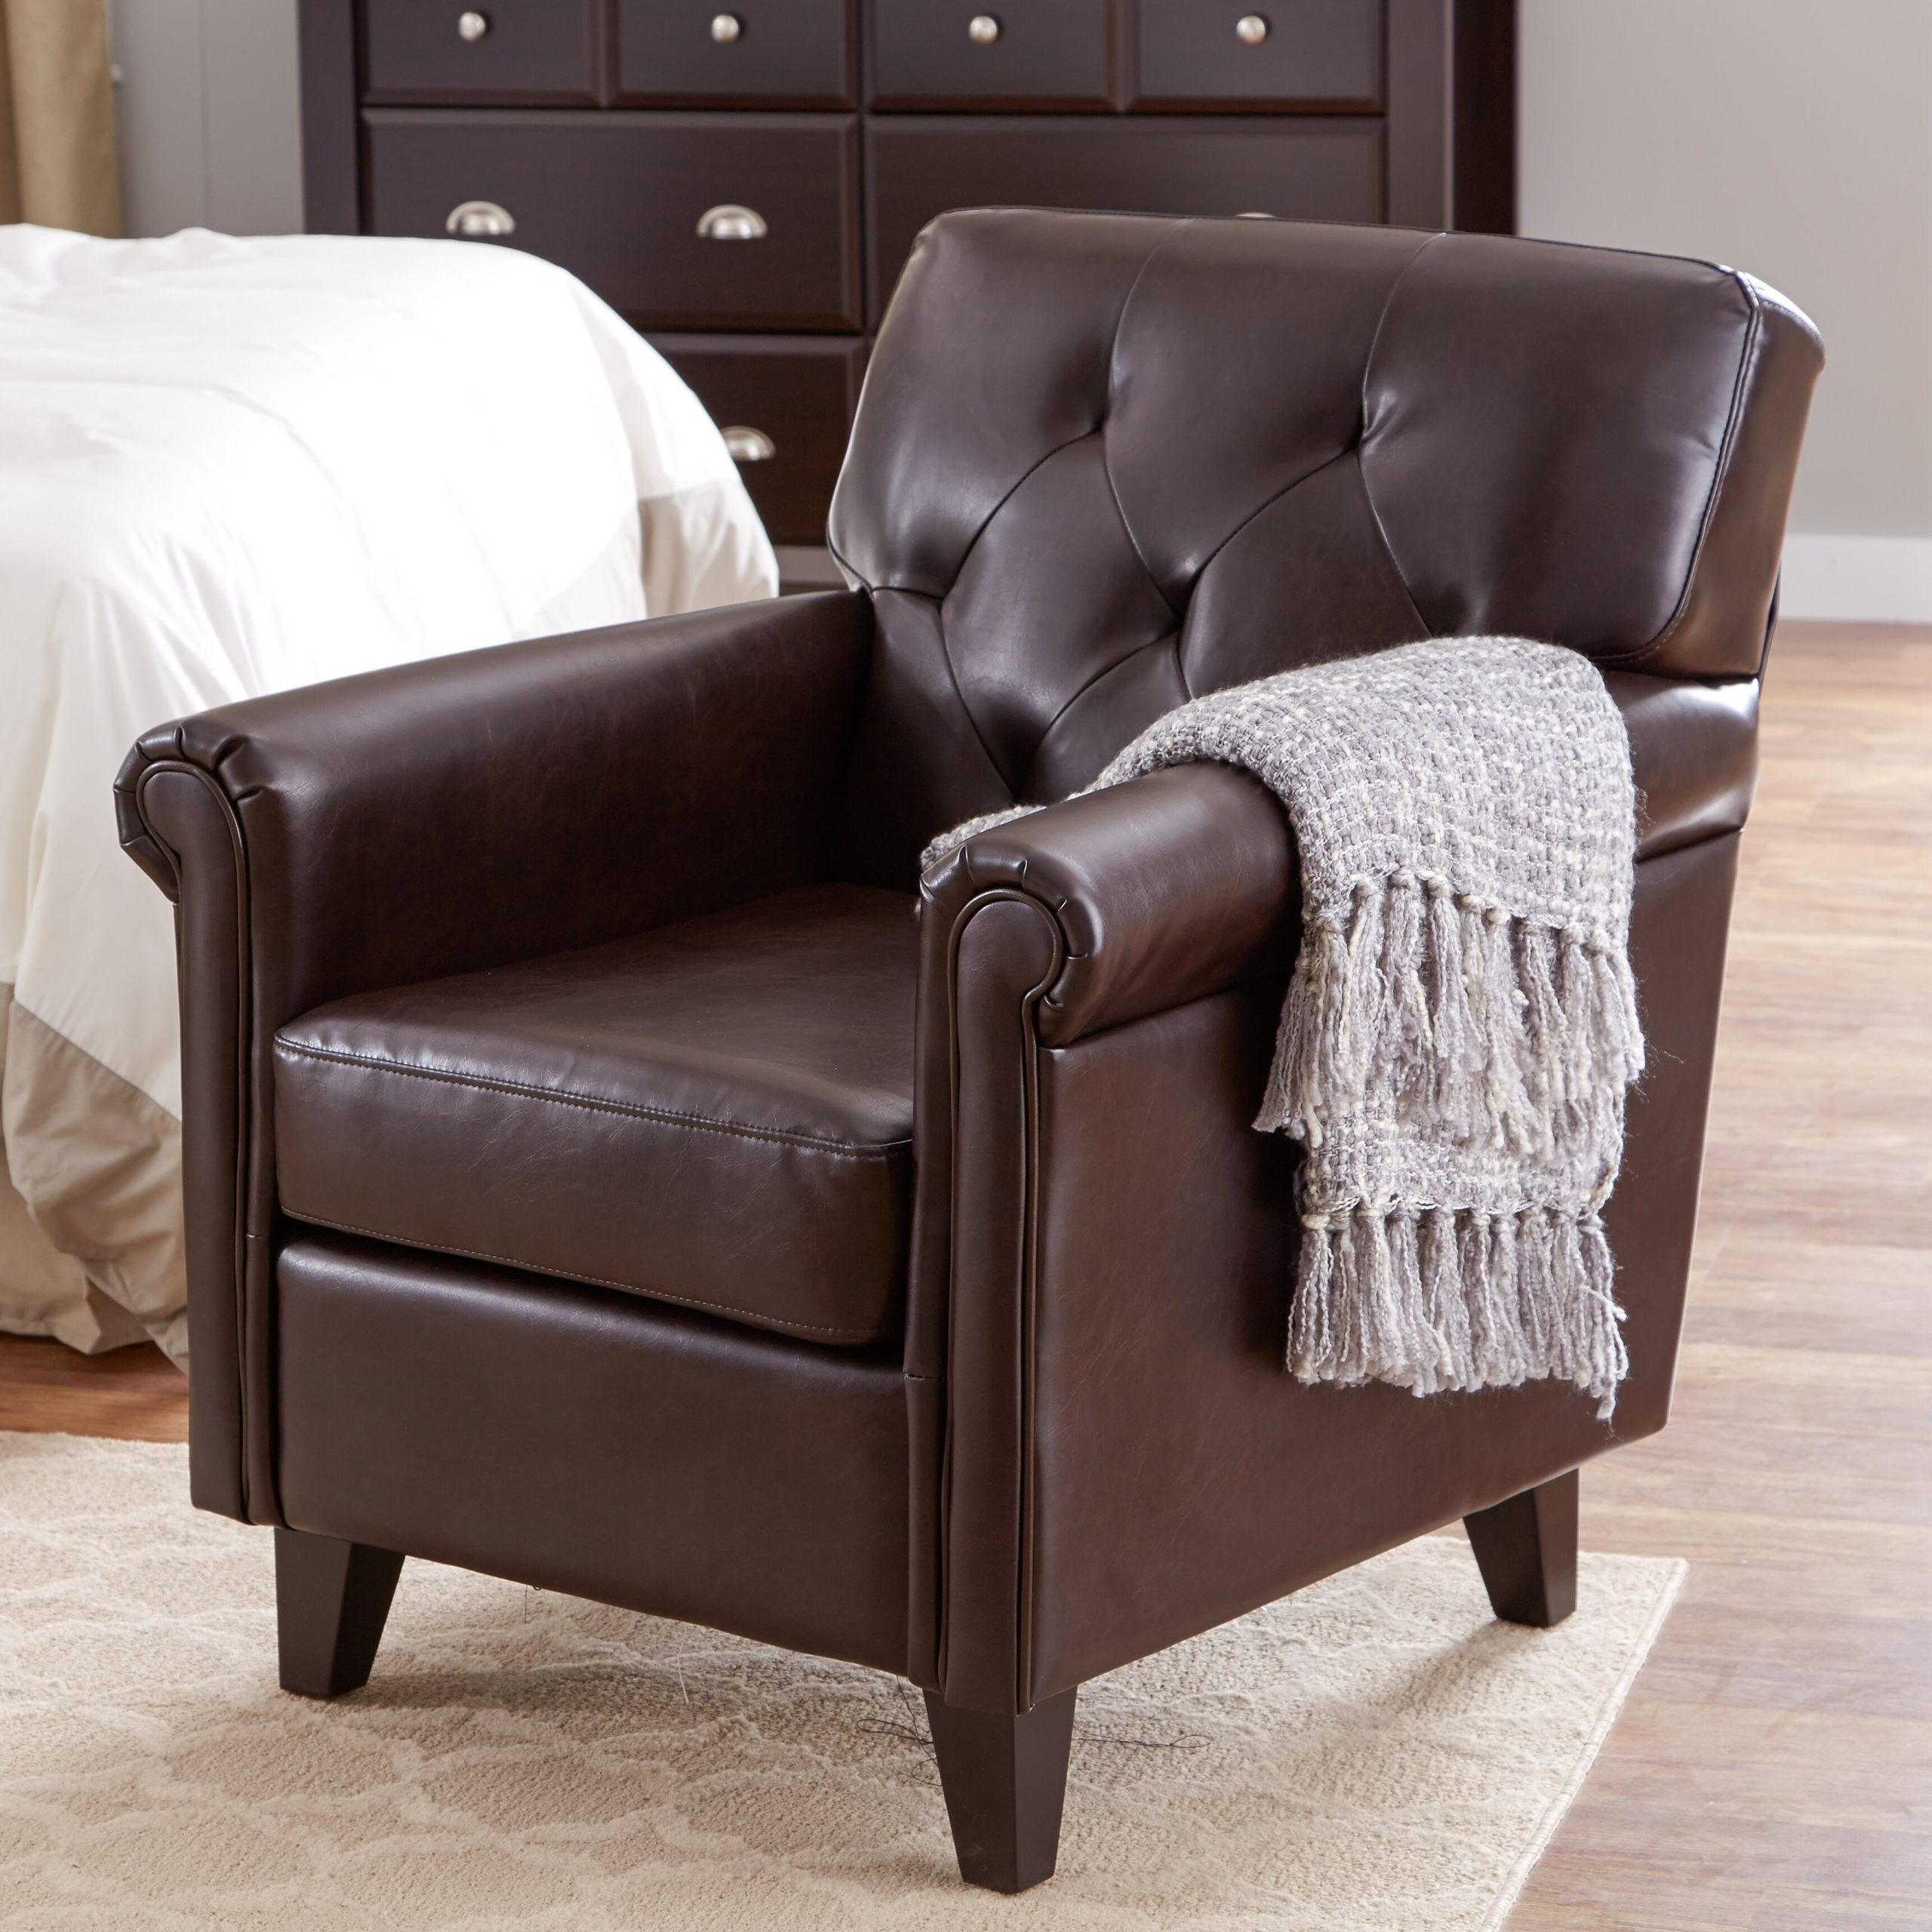 Club Accent Chairs You'Ll Love In 2021 | Wayfair (View 10 of 15)